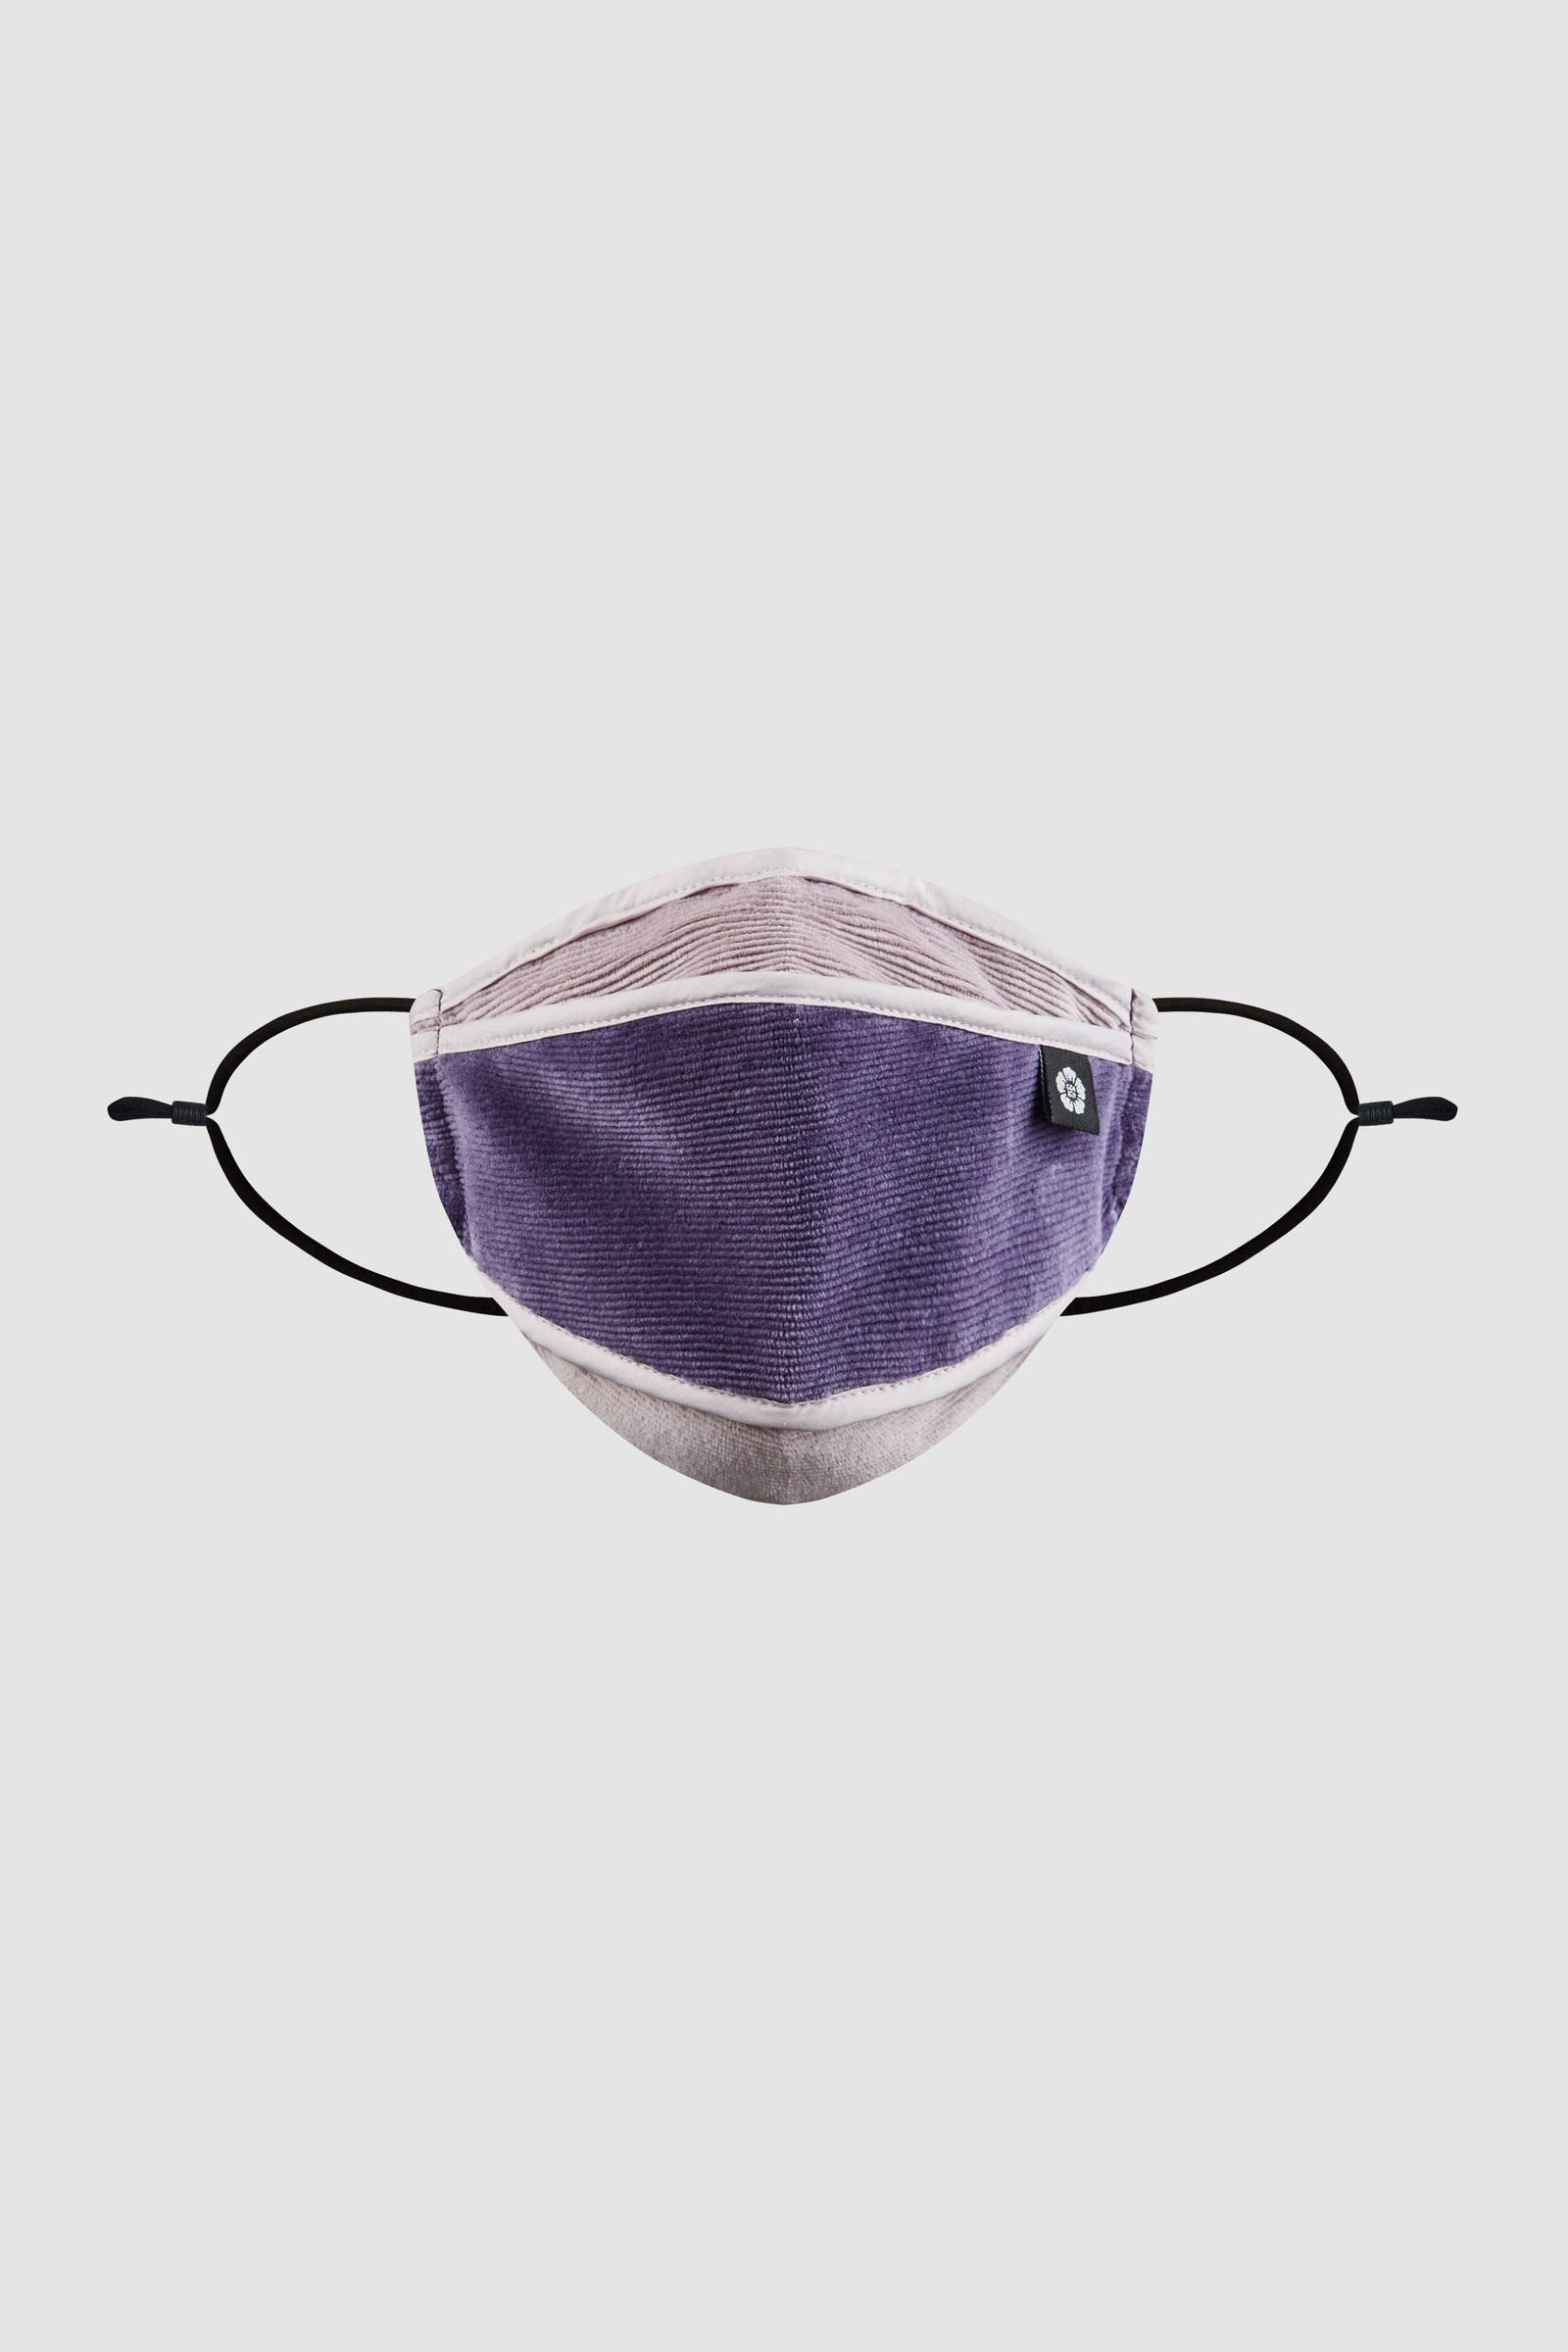 Photo of Purple Velvet Corduroy Mask, number 2